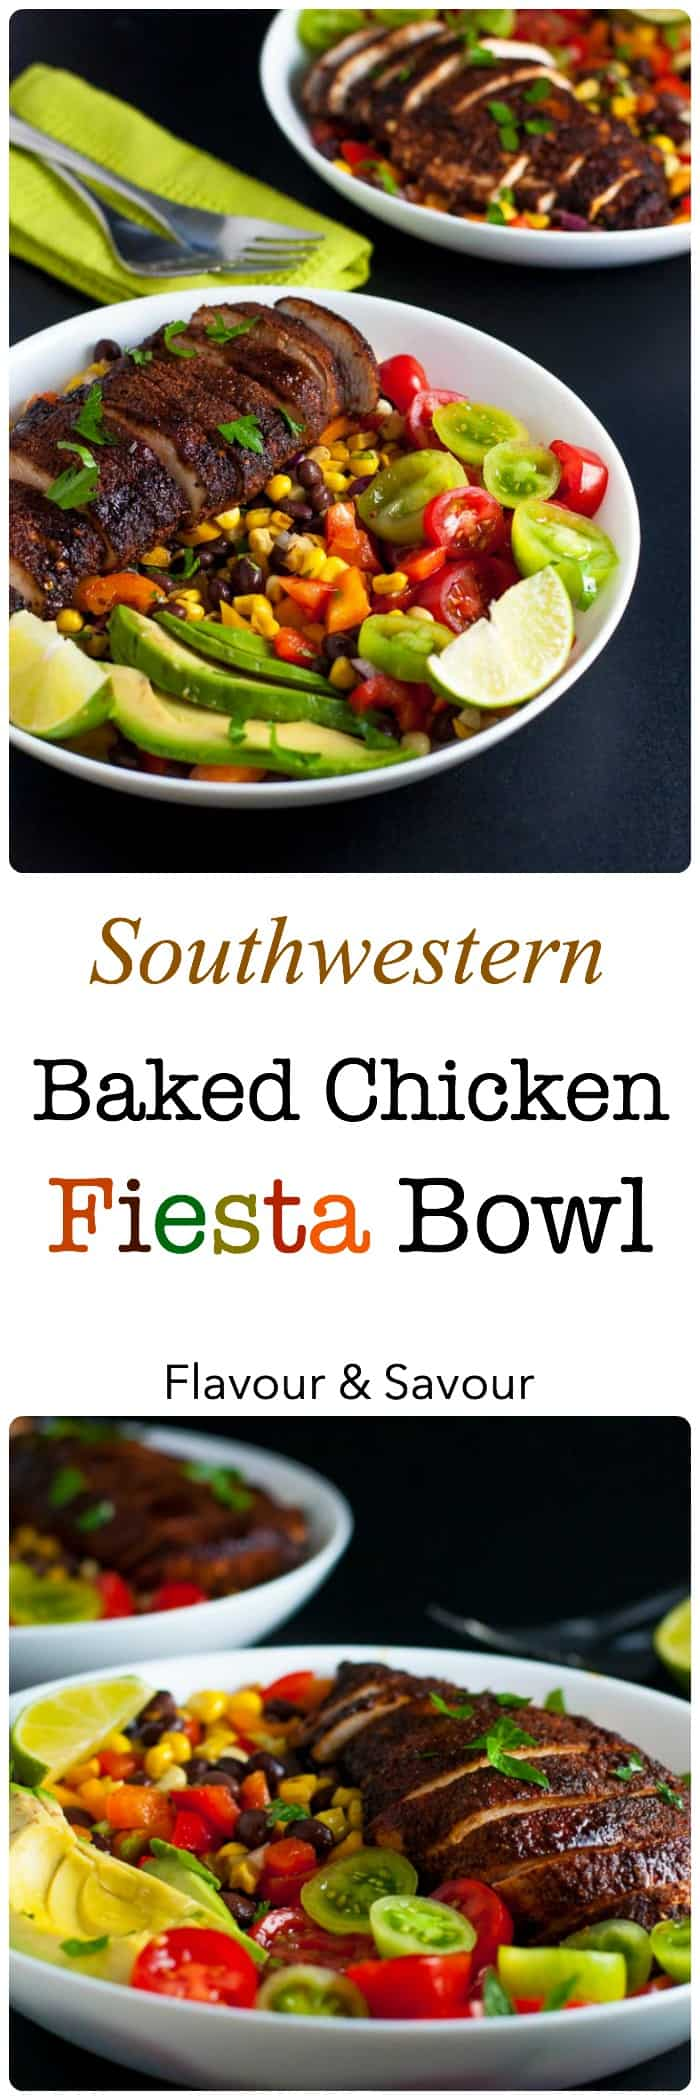 Look no further for a healthy dinner-in-a-bowl than this Southwestern Fiesta Baked Chicken Bowl. It's made with lean taco-seasoned chicken breasts and a fresh chopped salad made with black beans, corn, peppers. red onions, and jalapeño. Top it all off with tiny tomatoes and sliced avocado and drizzle with a zesty vinaigrette. |www.flavourandsavour.com